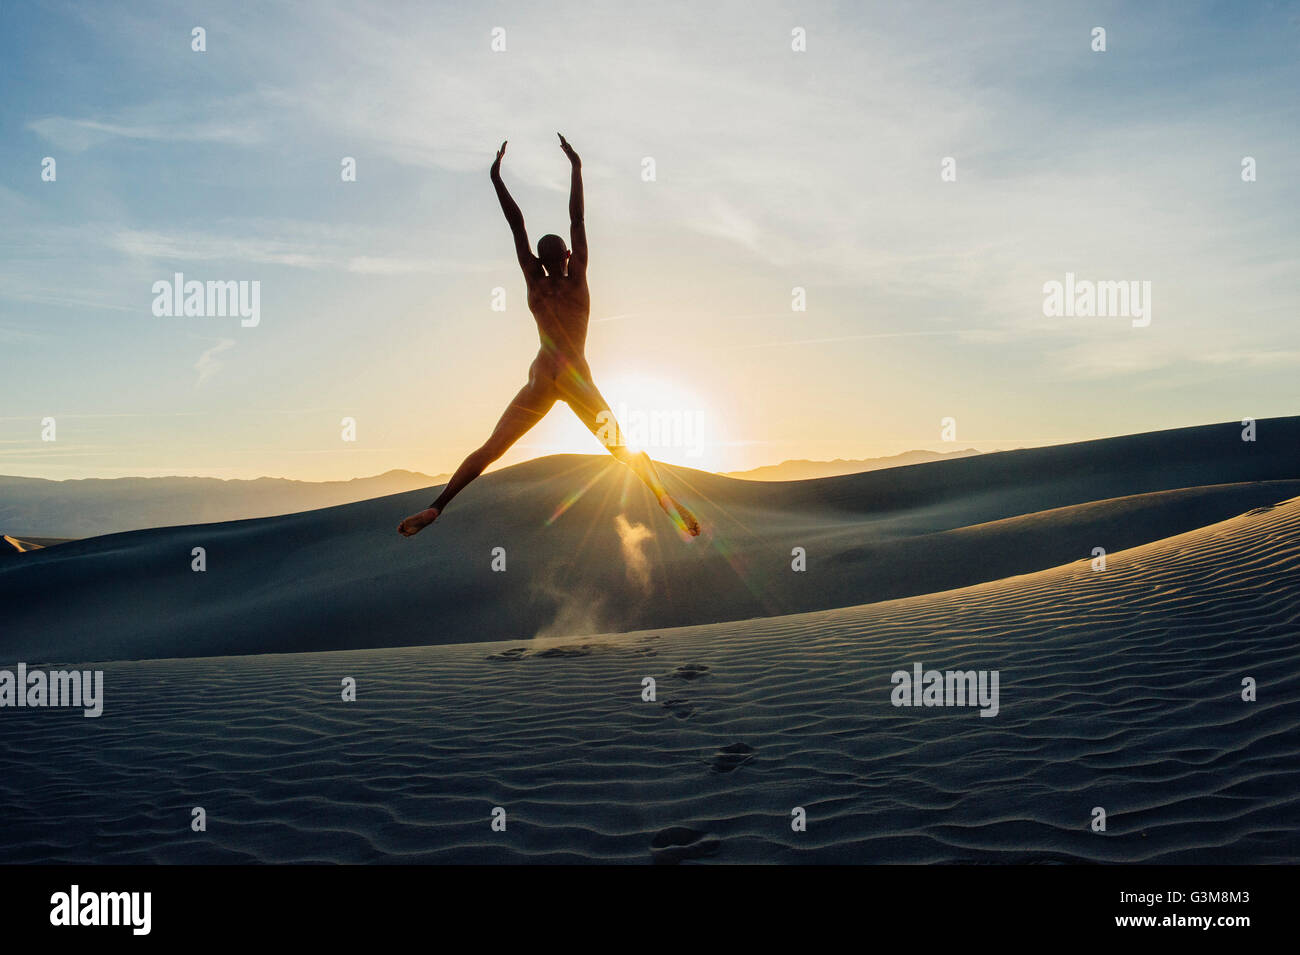 Nude woman in desert arms raised jumping in mid air - Stock Image